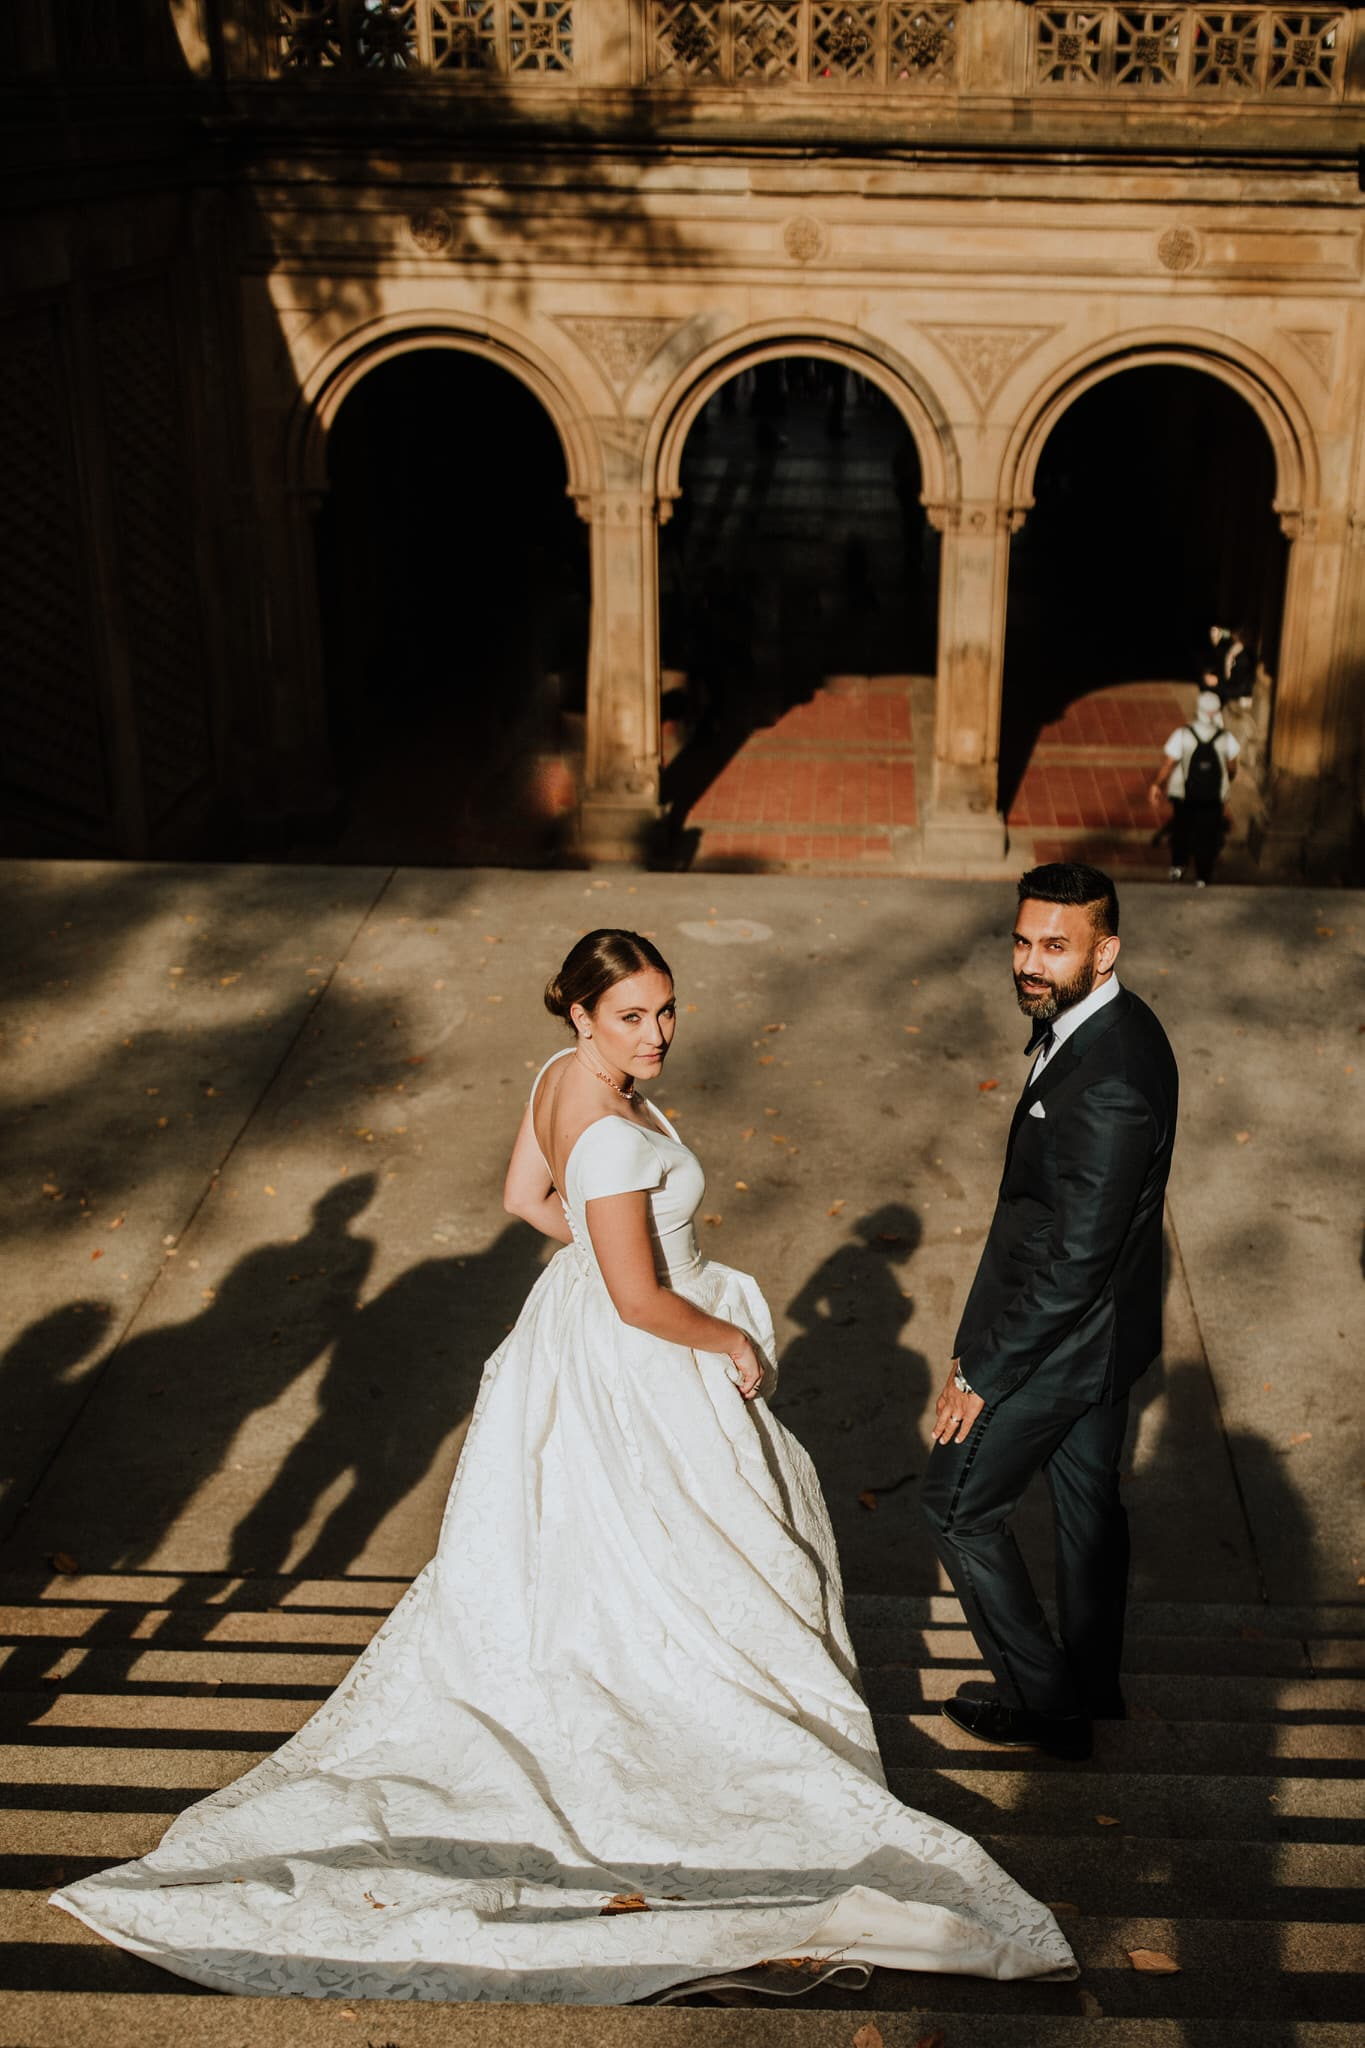 The bride and groom walk down the stairs in Central Park, New York City. Wedding Photographer Brent Calis.